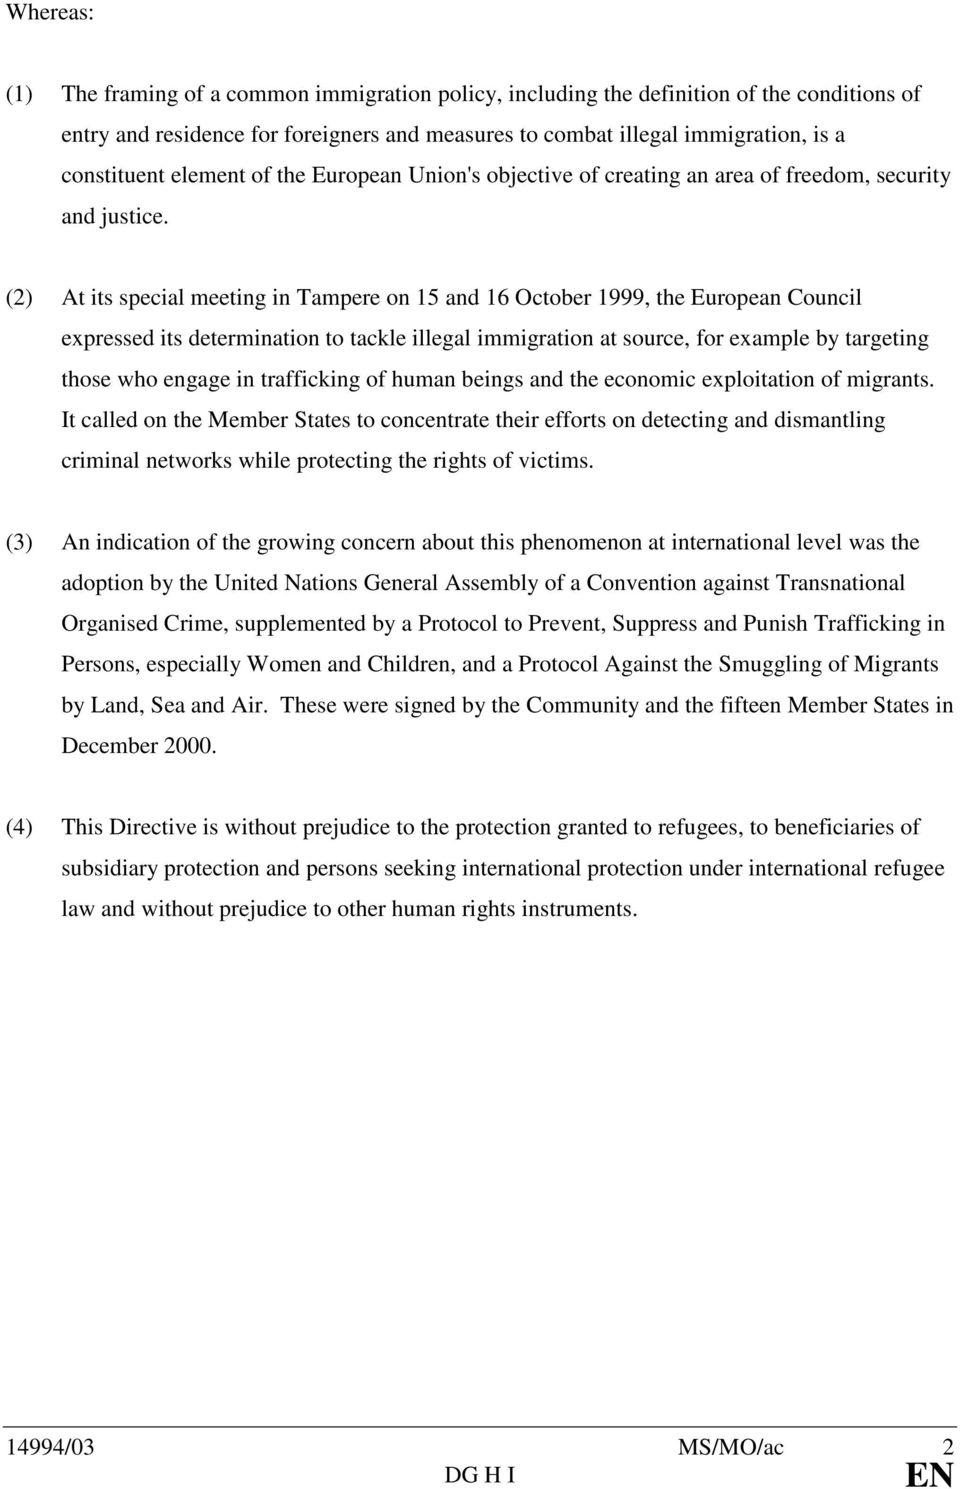 (2) At its special meeting in Tampere on 15 and 16 October 1999, the European Council expressed its determination to tackle illegal immigration at source, for example by targeting those who engage in